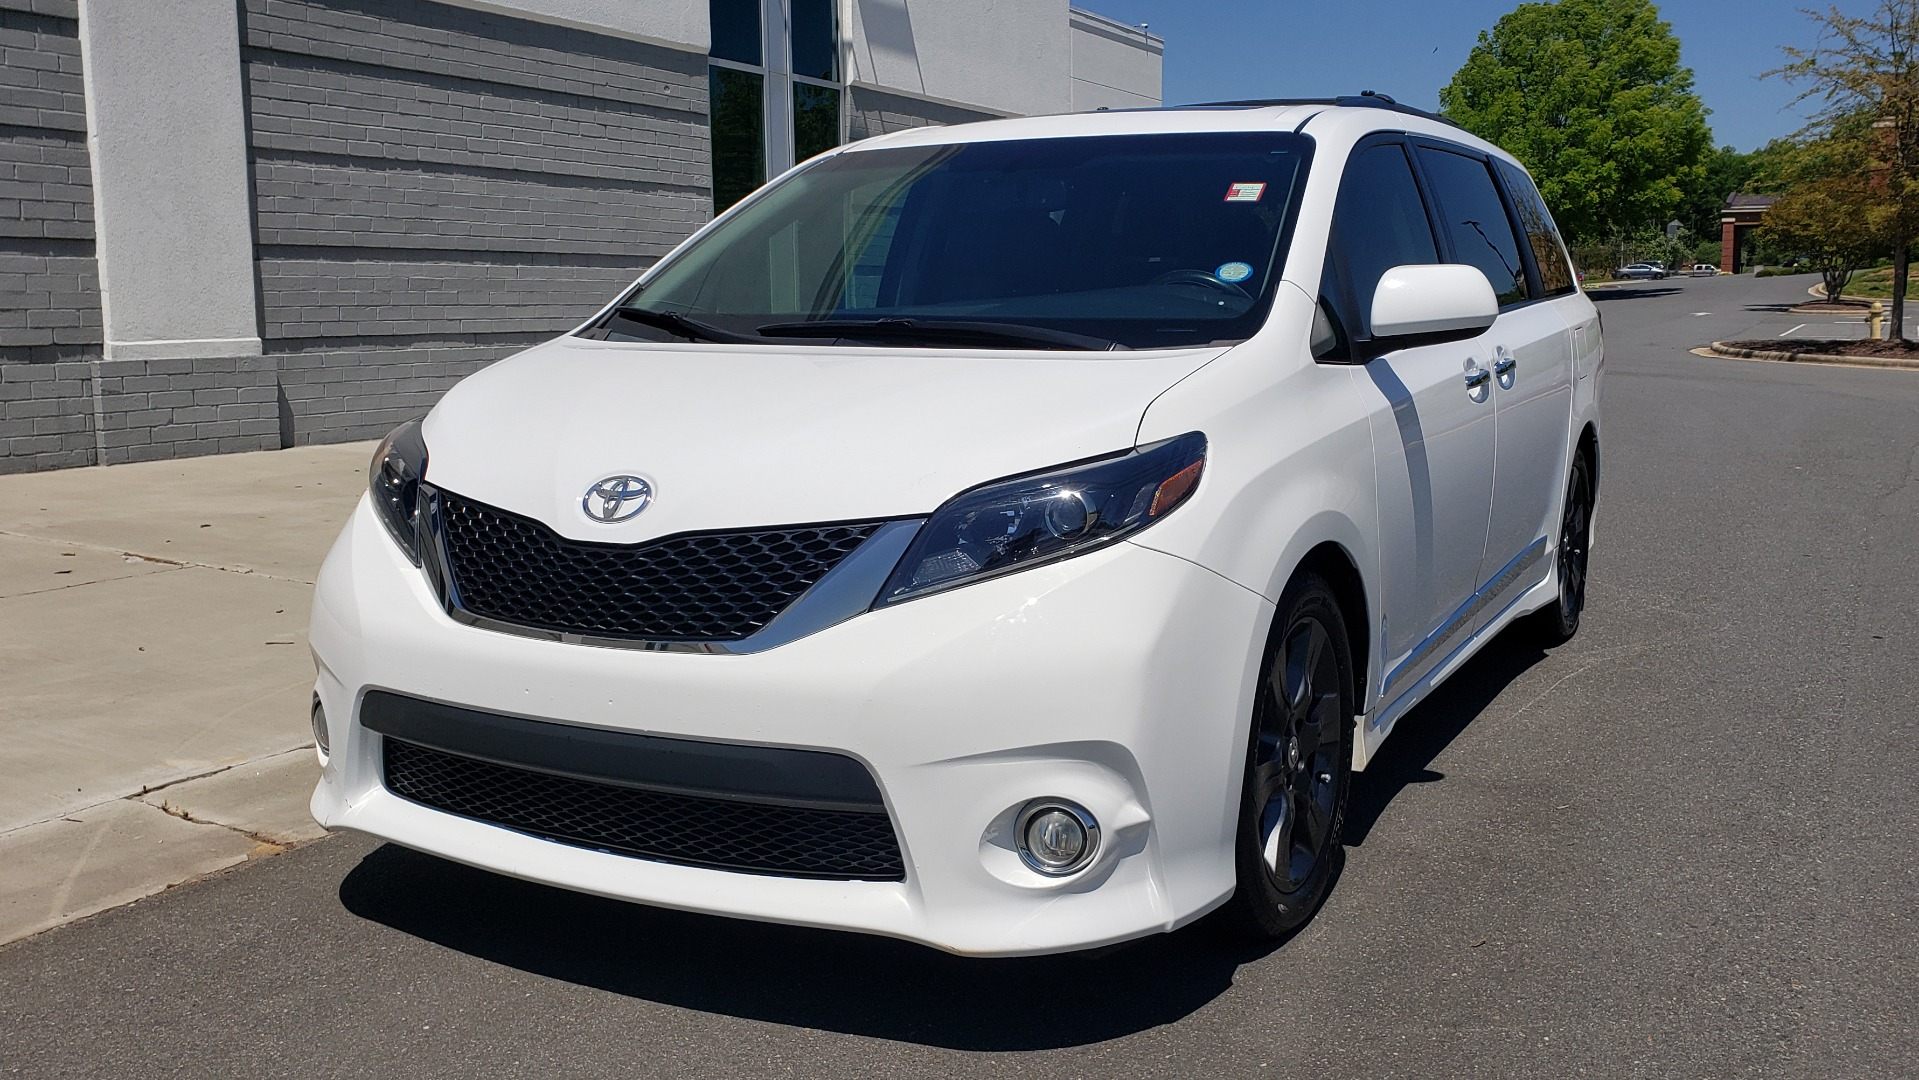 Used 2015 Toyota SIENNA SE 3.5L / FWD / 8-PASS / SUNROOF / 3-ROWS / REARVIEW for sale $21,995 at Formula Imports in Charlotte NC 28227 1